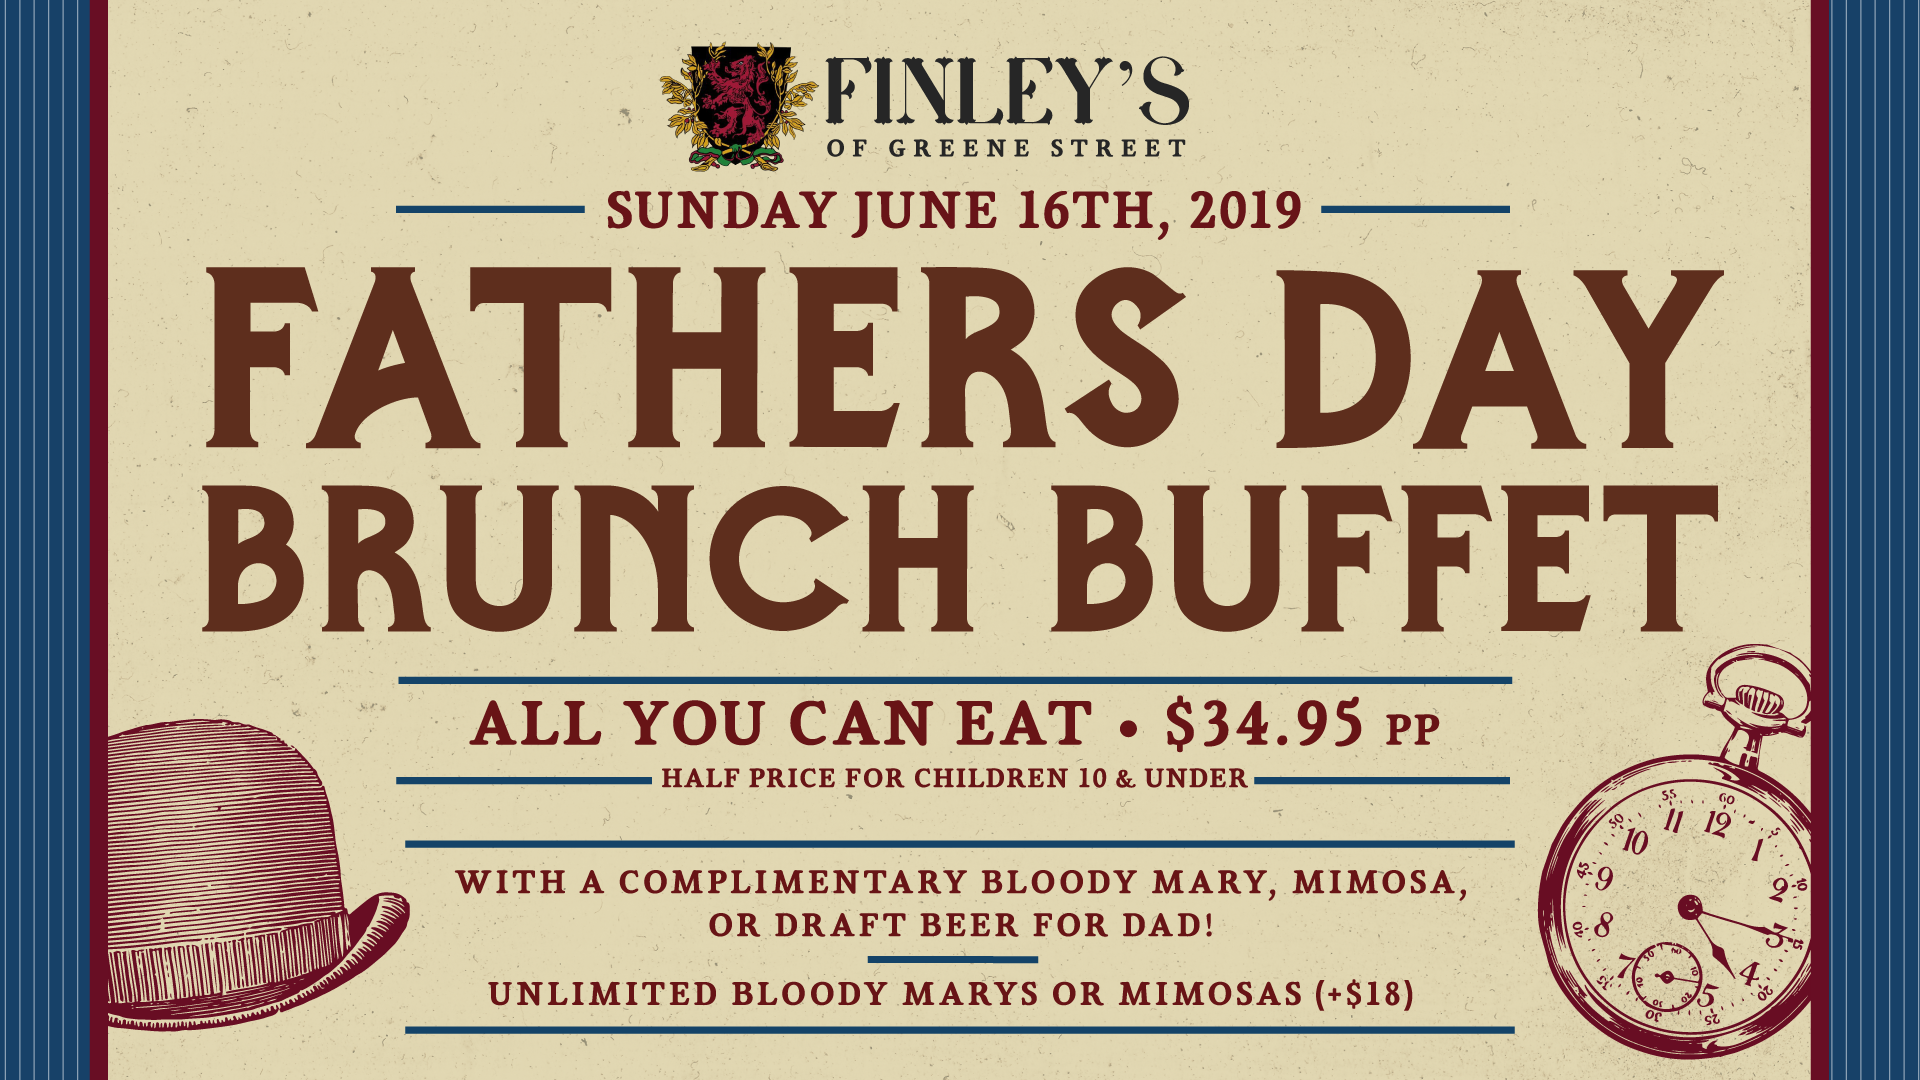 Flyer for Finley's Fathers Day Brunch Buffet